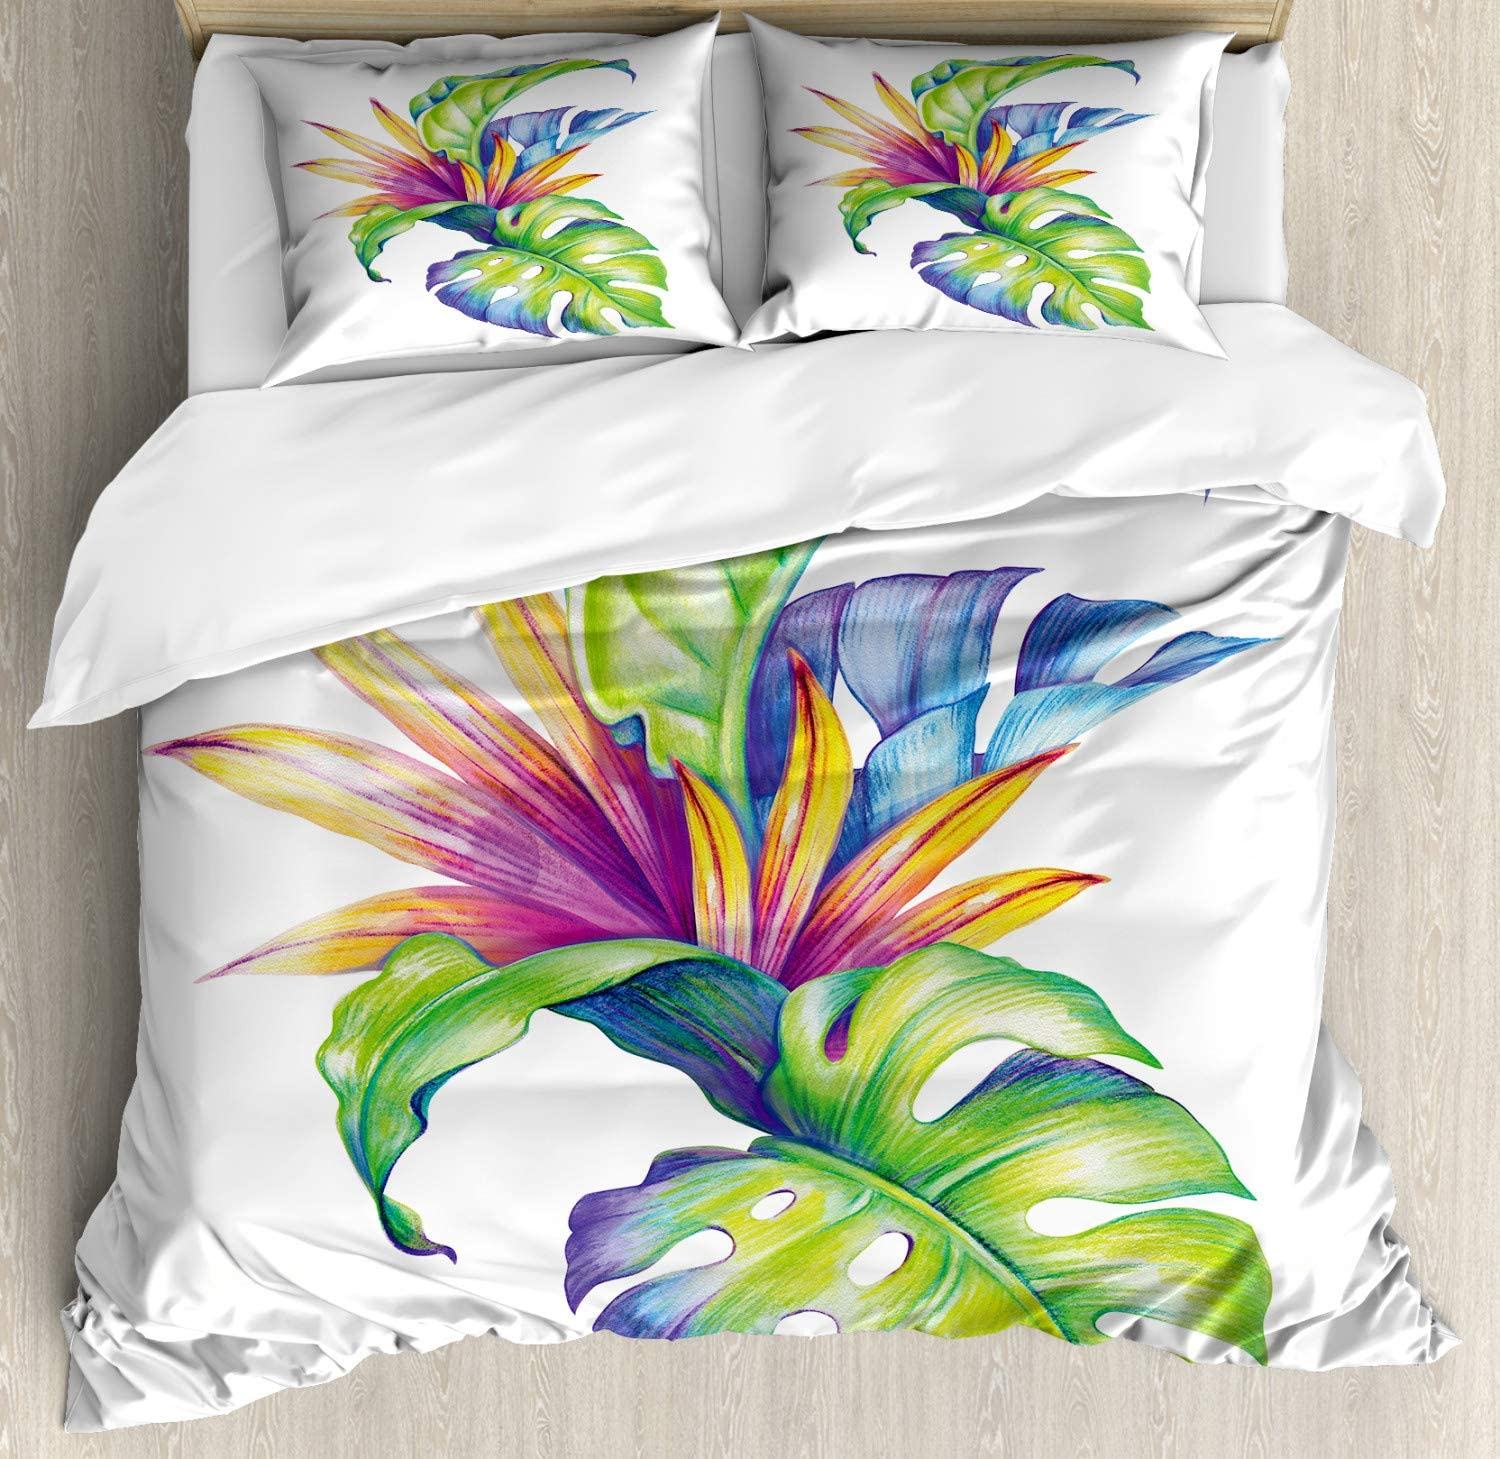 Red Teal Floral Painting with Colorful Bouquet of Poppy Flowers in Vase Decorative 3 Piece Bedding Set with 2 Pillow Shams Queen Size Ambesonne Impressionist Duvet Cover Set